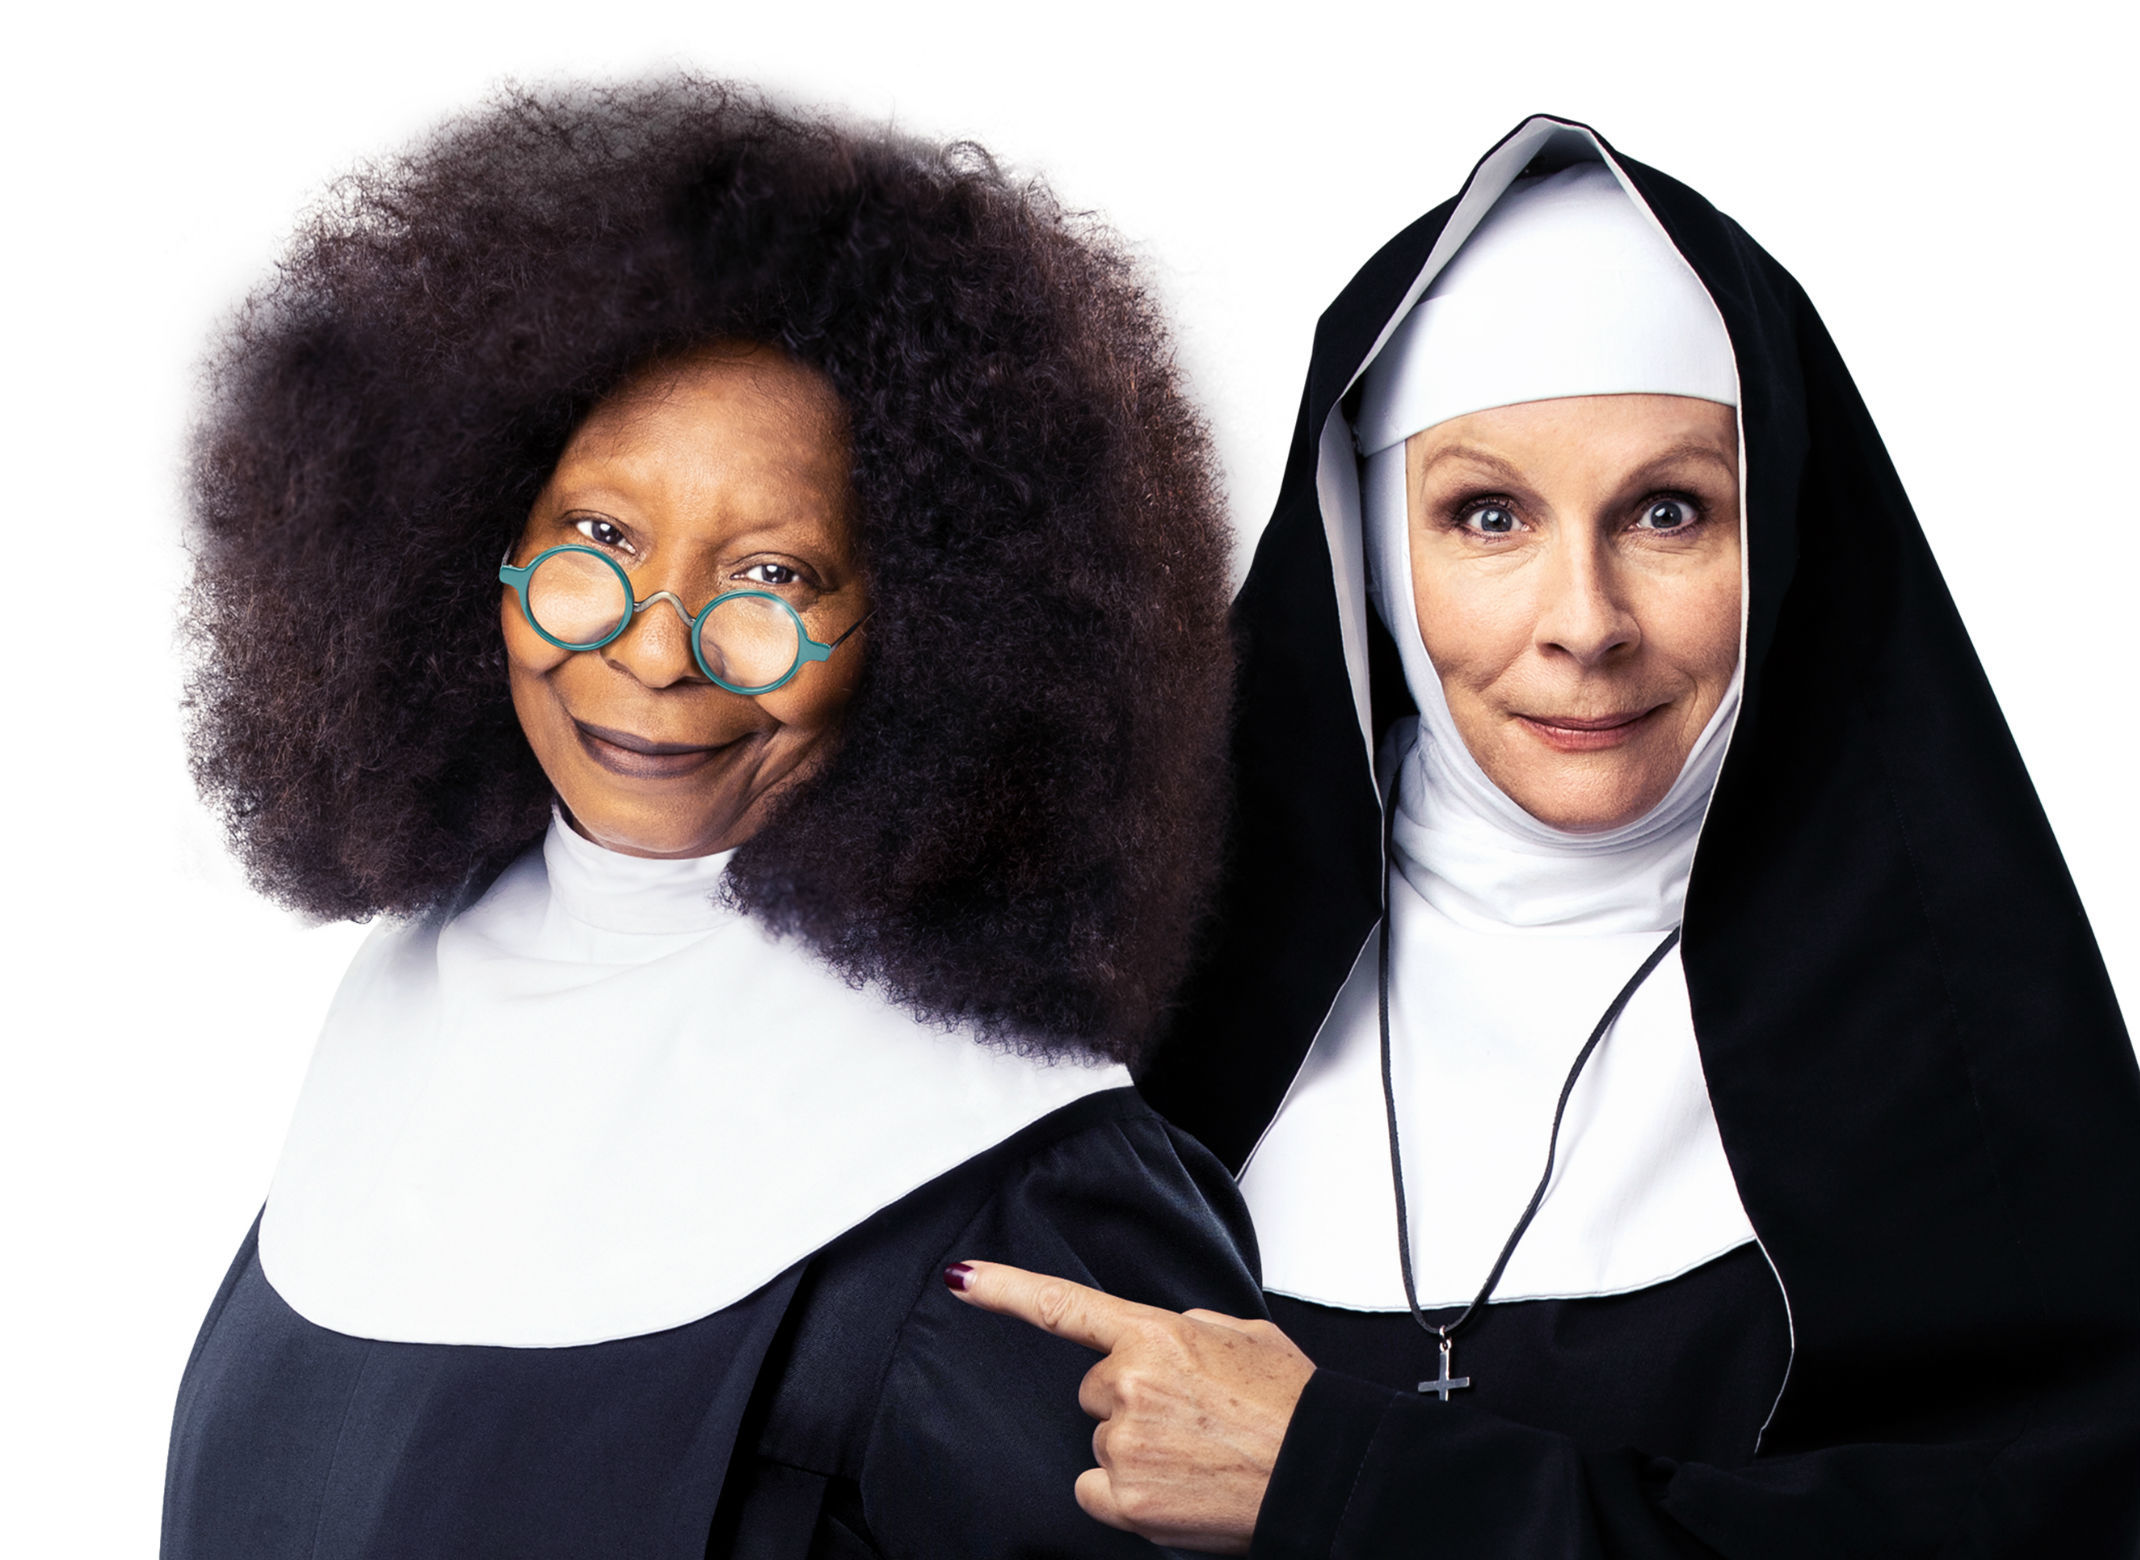 Whoopi Goldberg and Jennifer Saunders star in 'Sister Act'